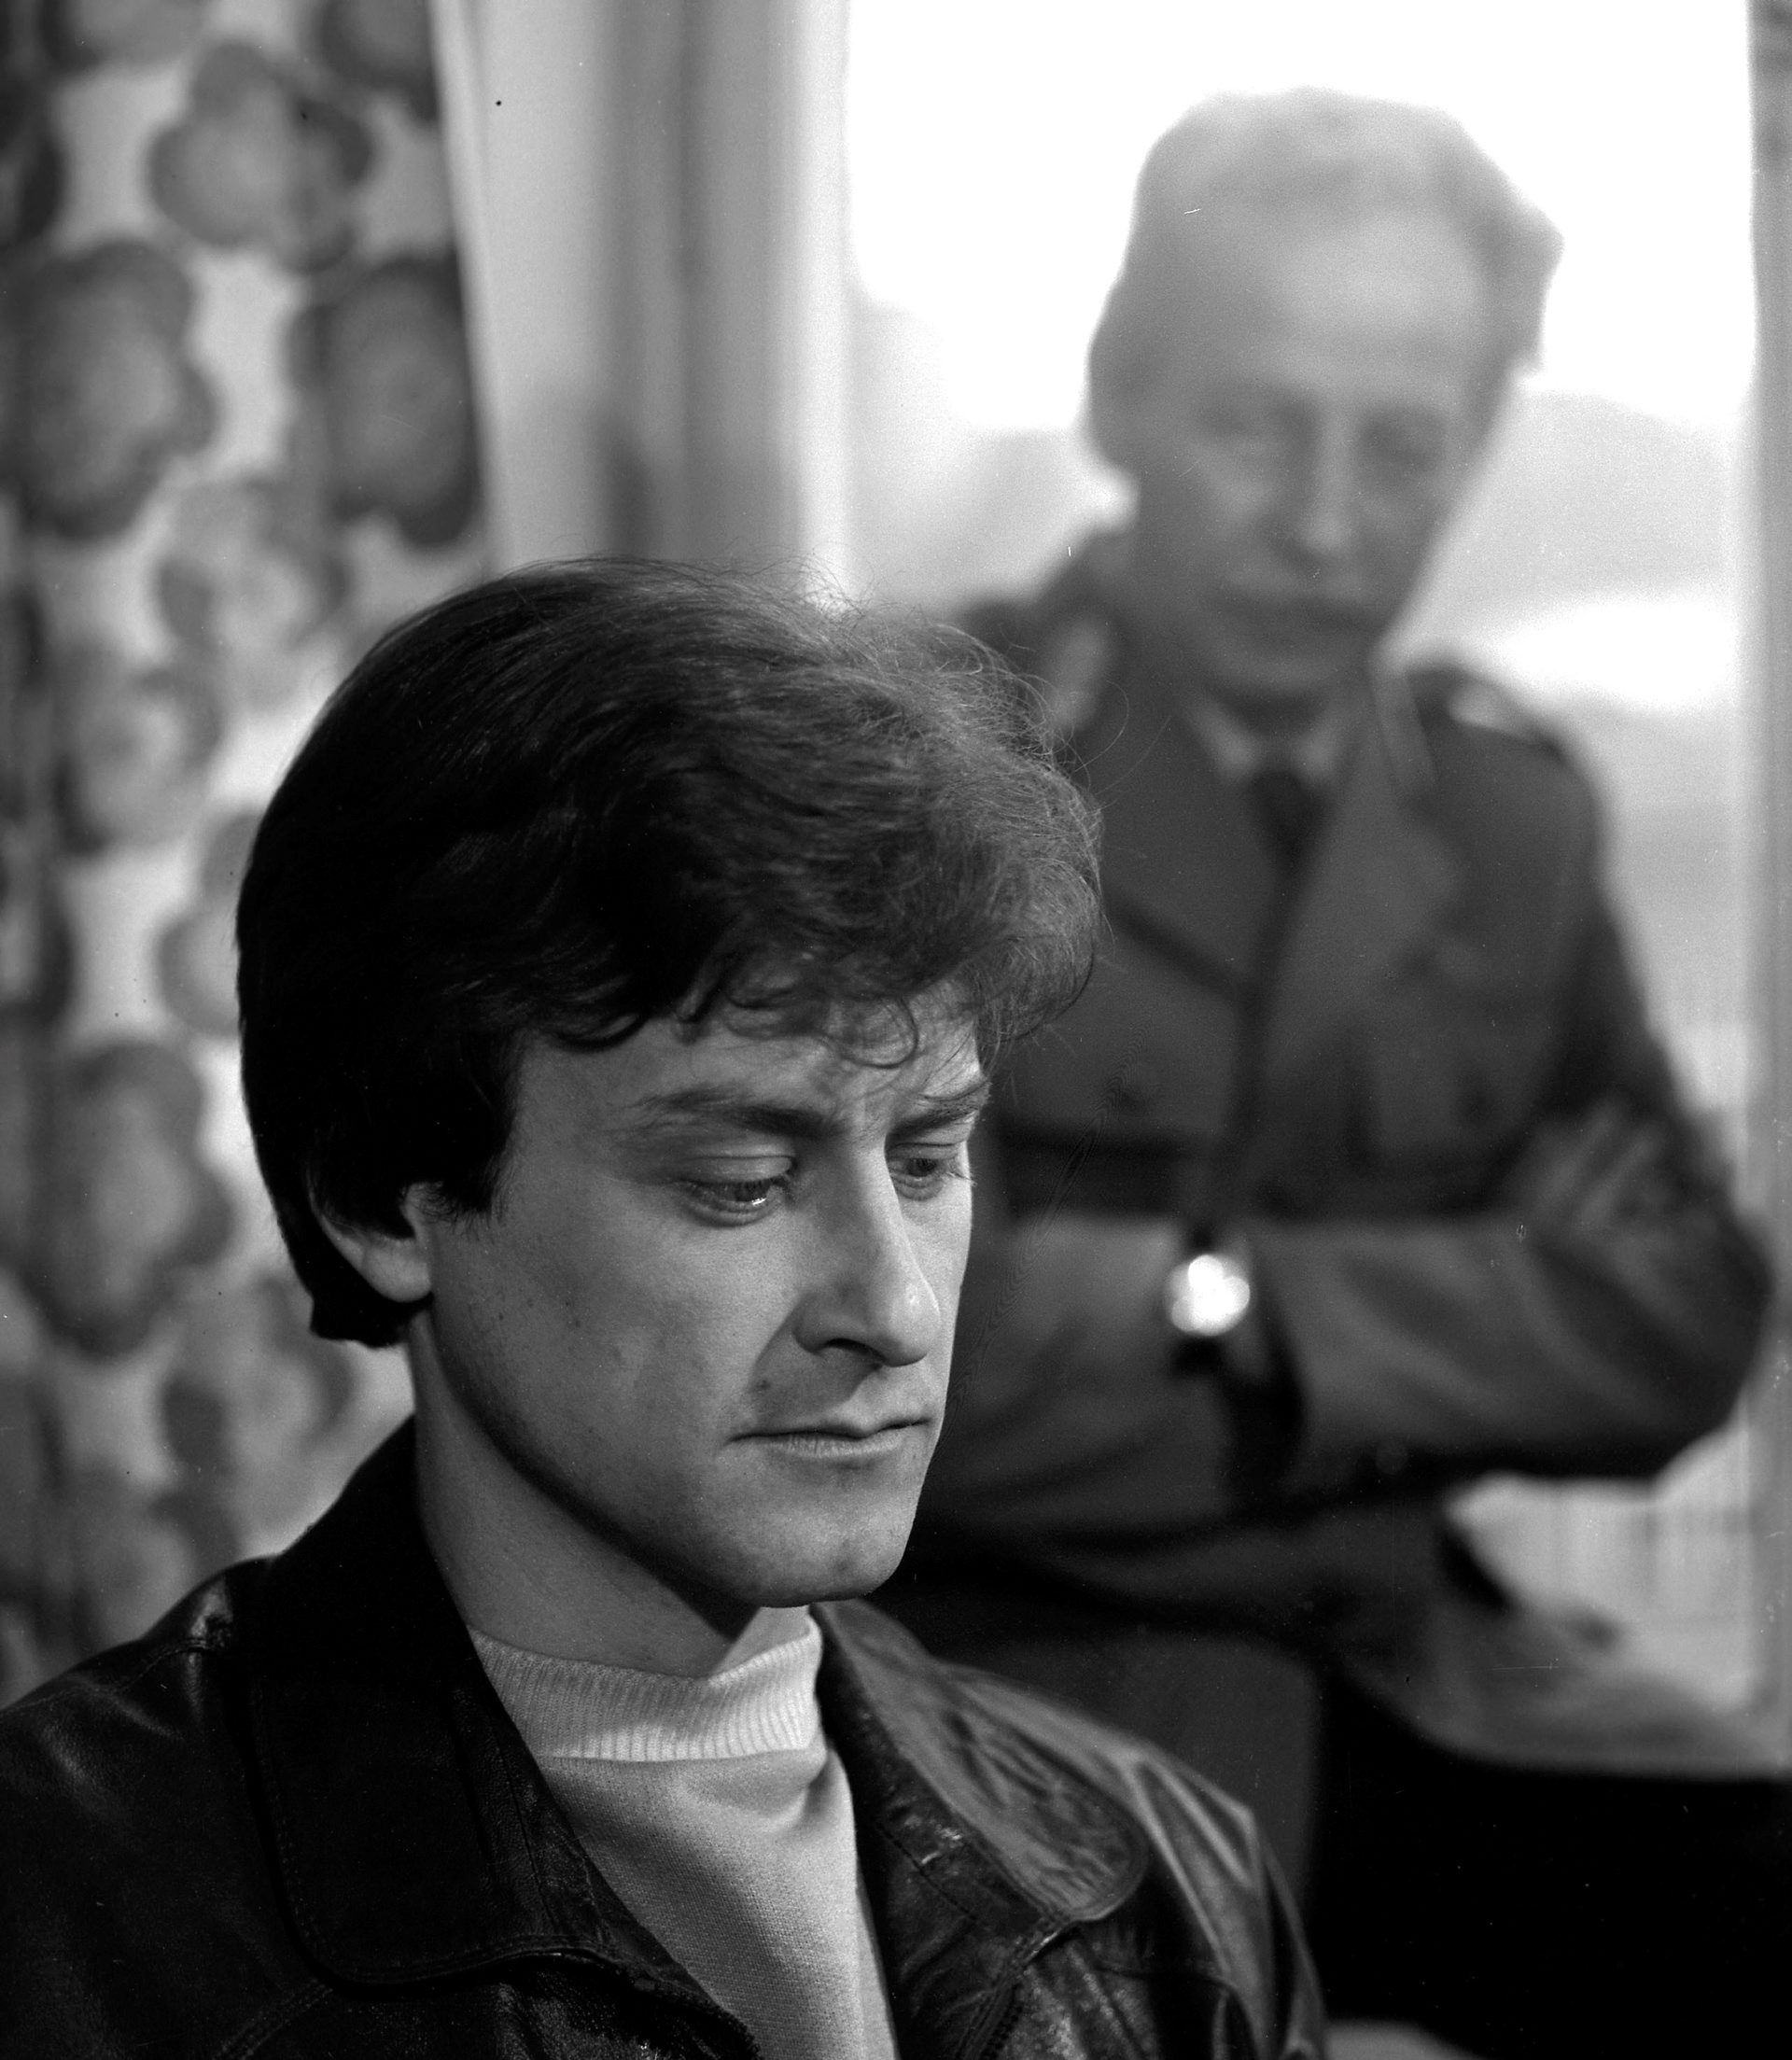 Jan Monczka in Tulipan (1986)